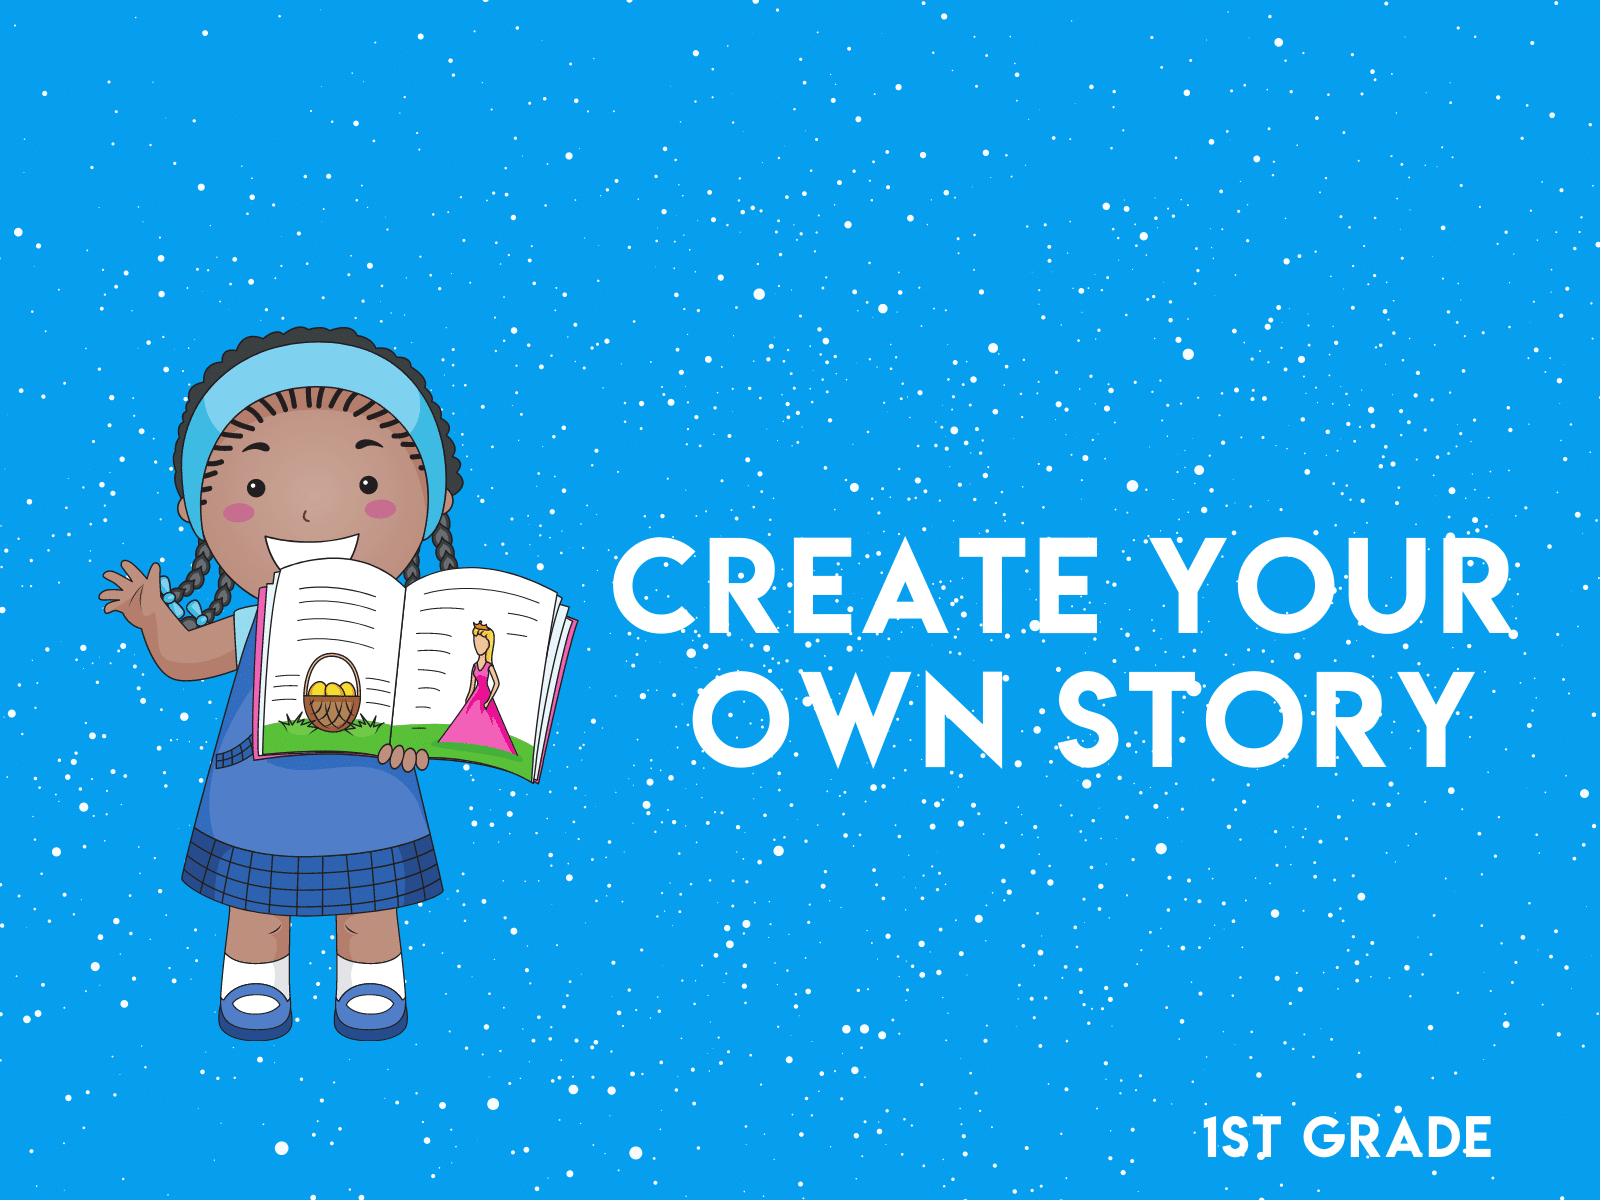 Create your own story fairy tale guide for first grade writing.